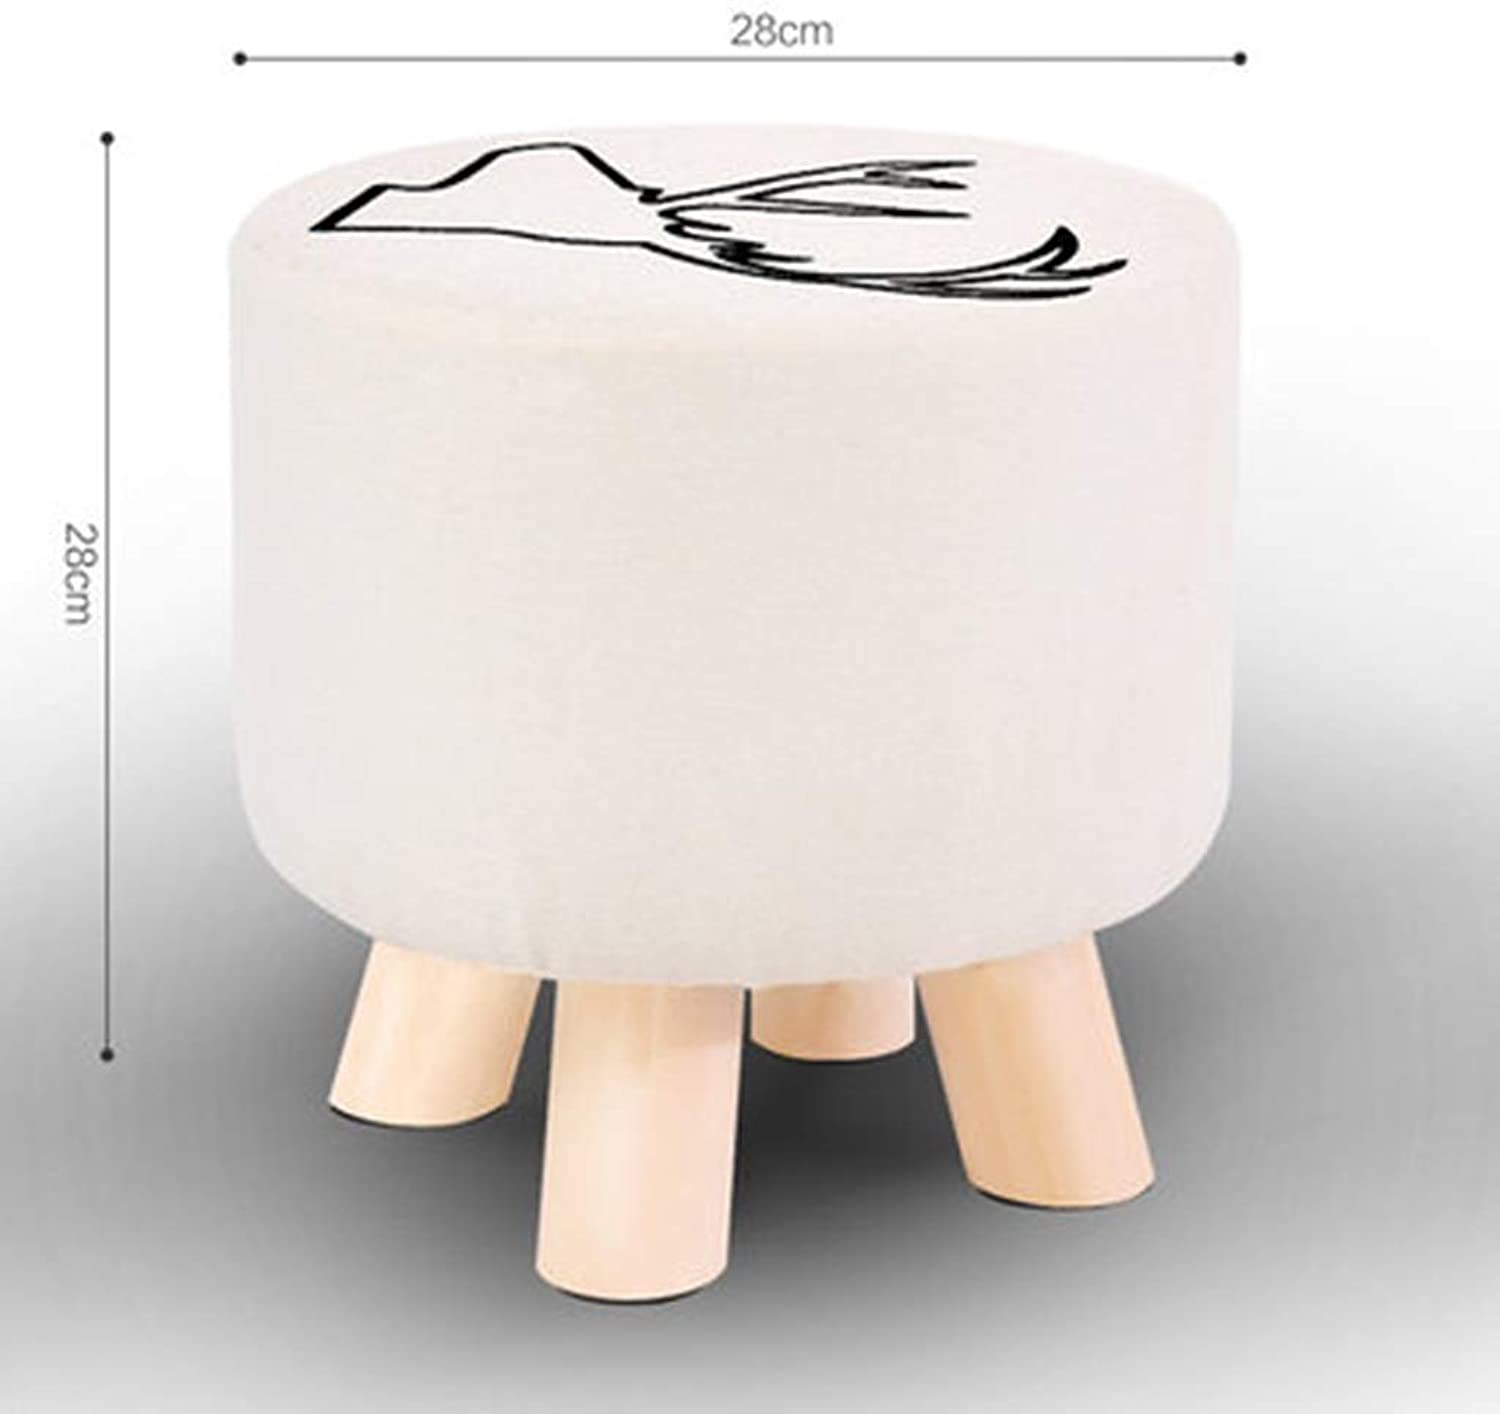 RHHWJJXB Solid Wood shoes Bench Home Wear shoes Bench Round Square Stool Cloth Literary Stool Sofa Bench Coffee Table Bench Living Room Stool (color   E)